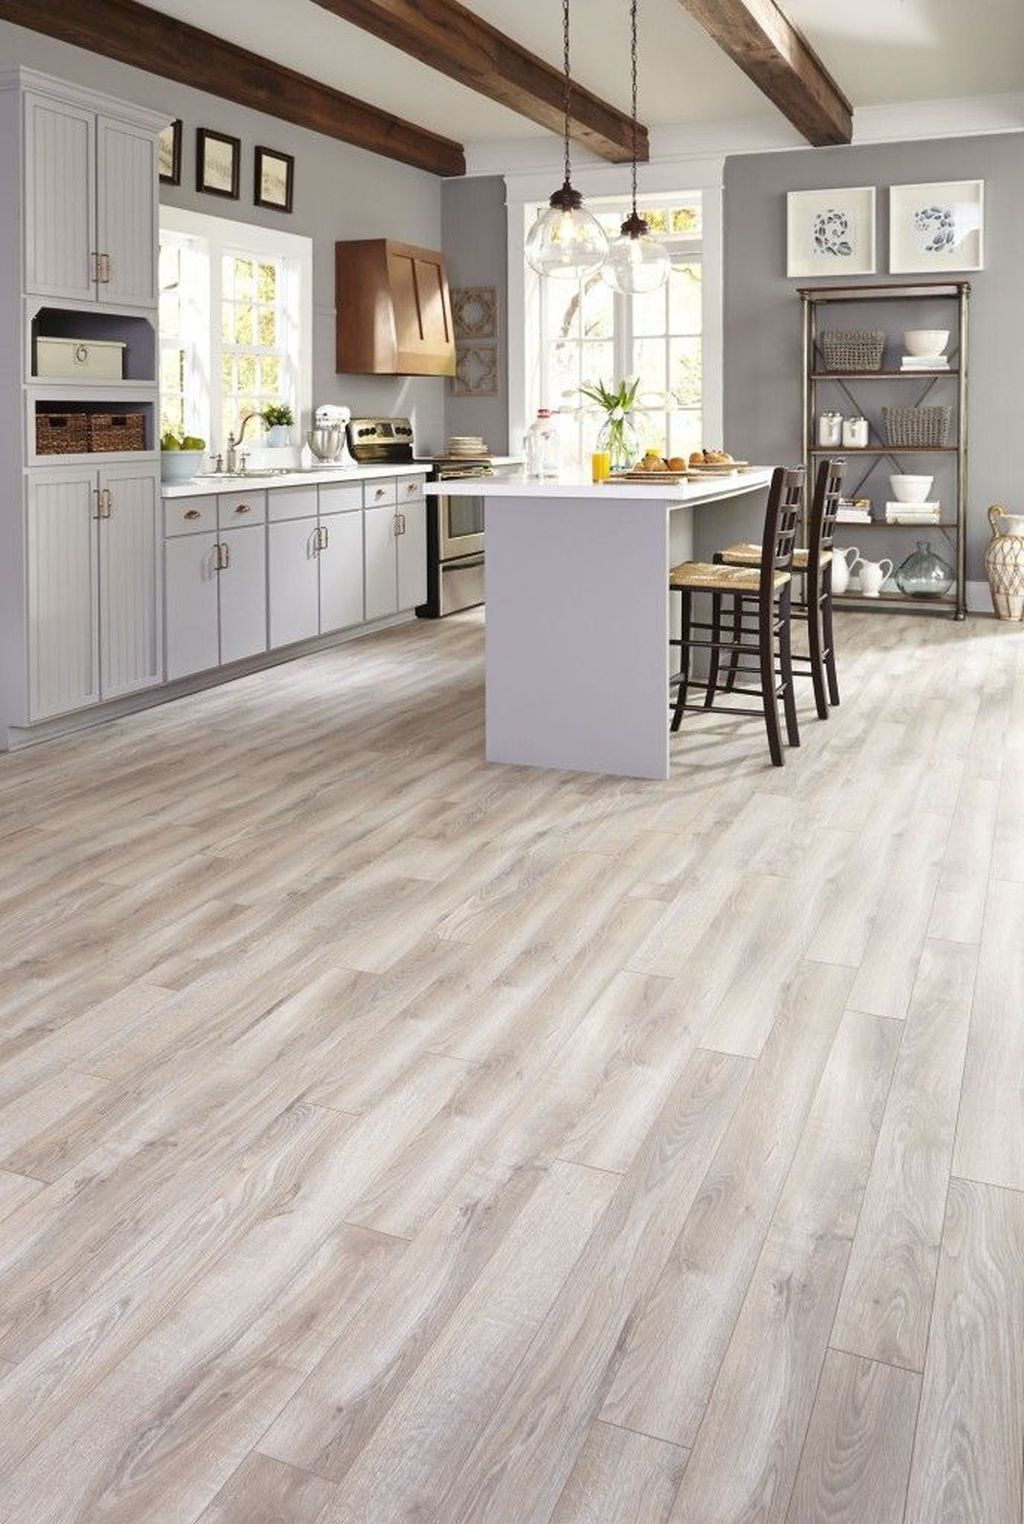 36 wonderful examples of wood laminate flooring for your